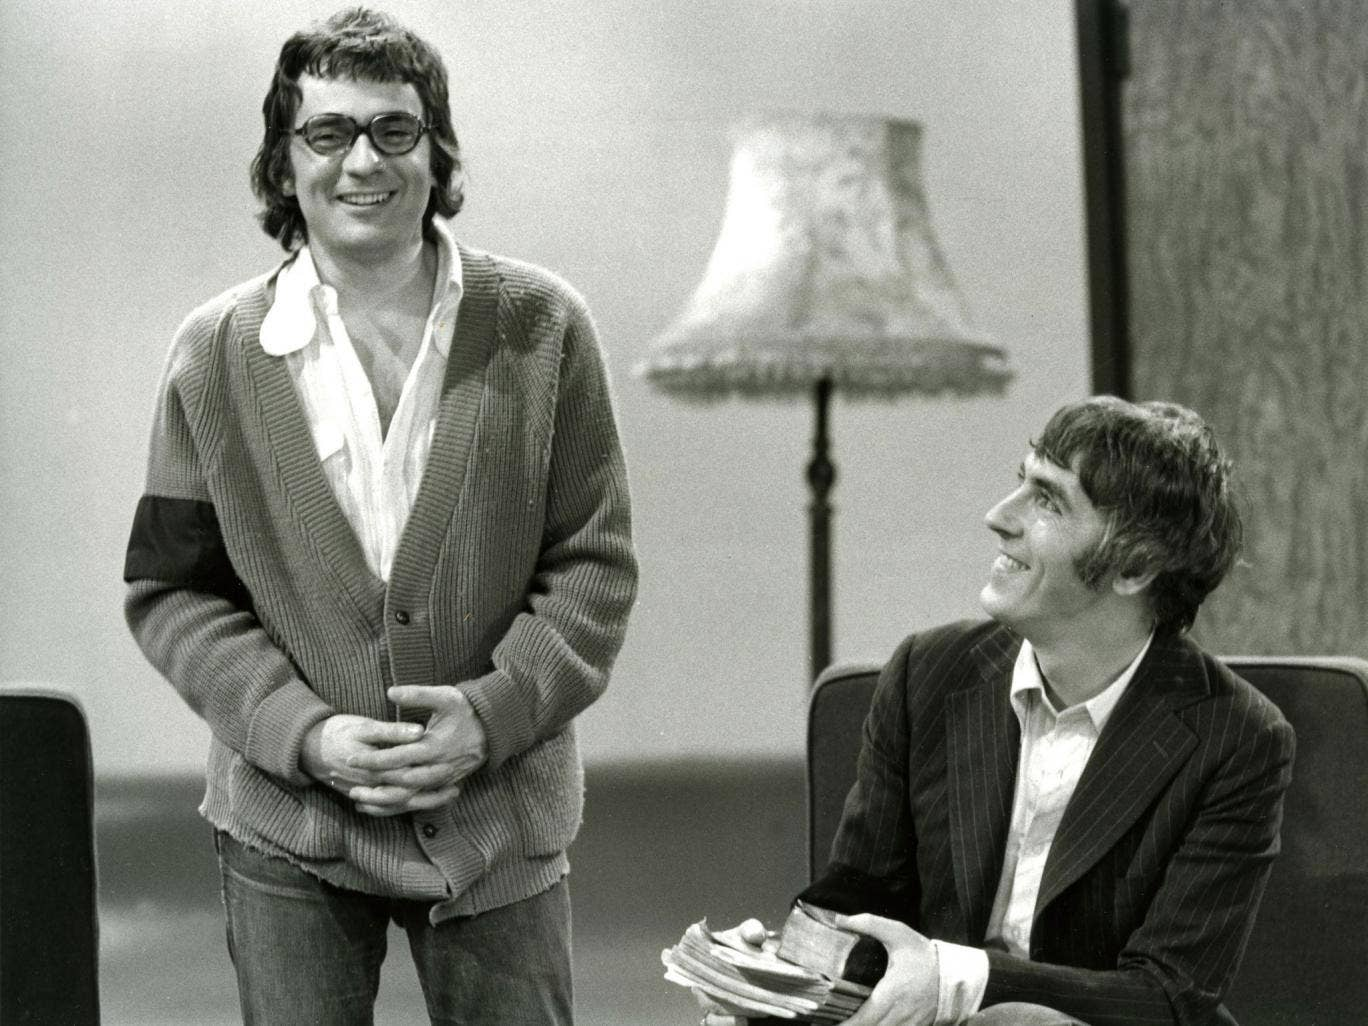 The Comedy Vaults: BBC's Hidden Treasure, pictured here: Dudley Moore and Peter Cook in 'Show of the Week' from 1974